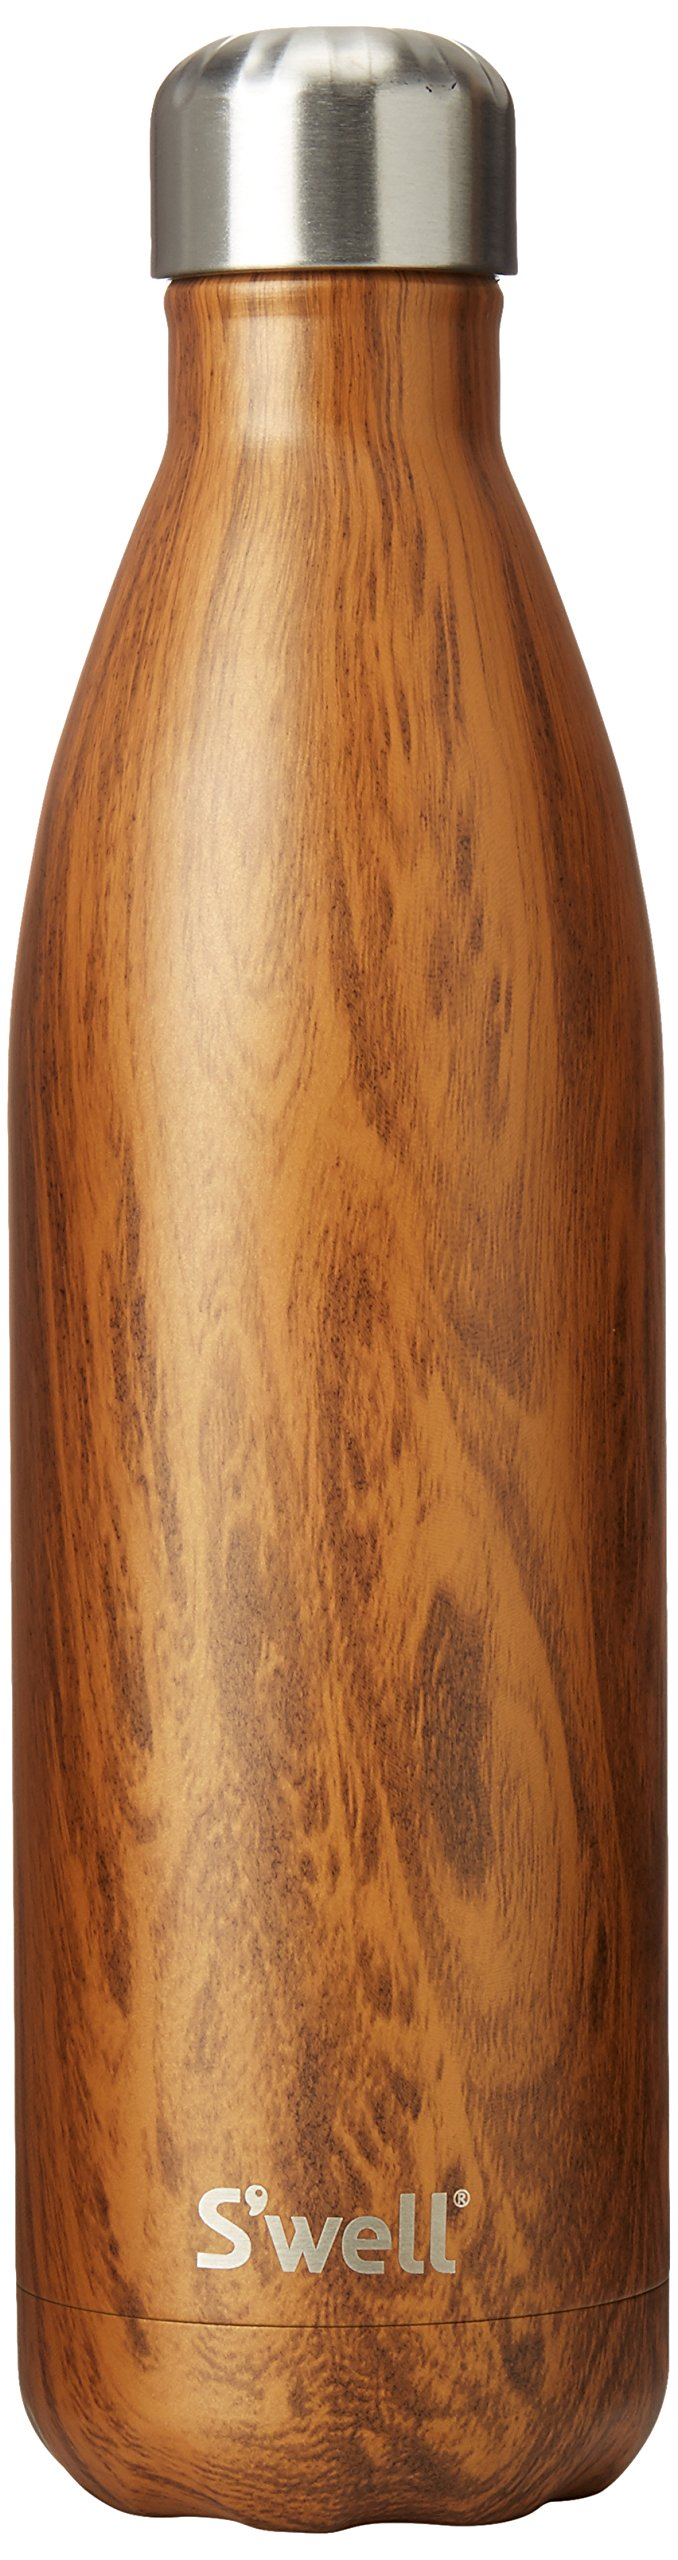 S'well Vacuum Insulated Stainless Steel Water Bottle, 25 oz, Teakwood